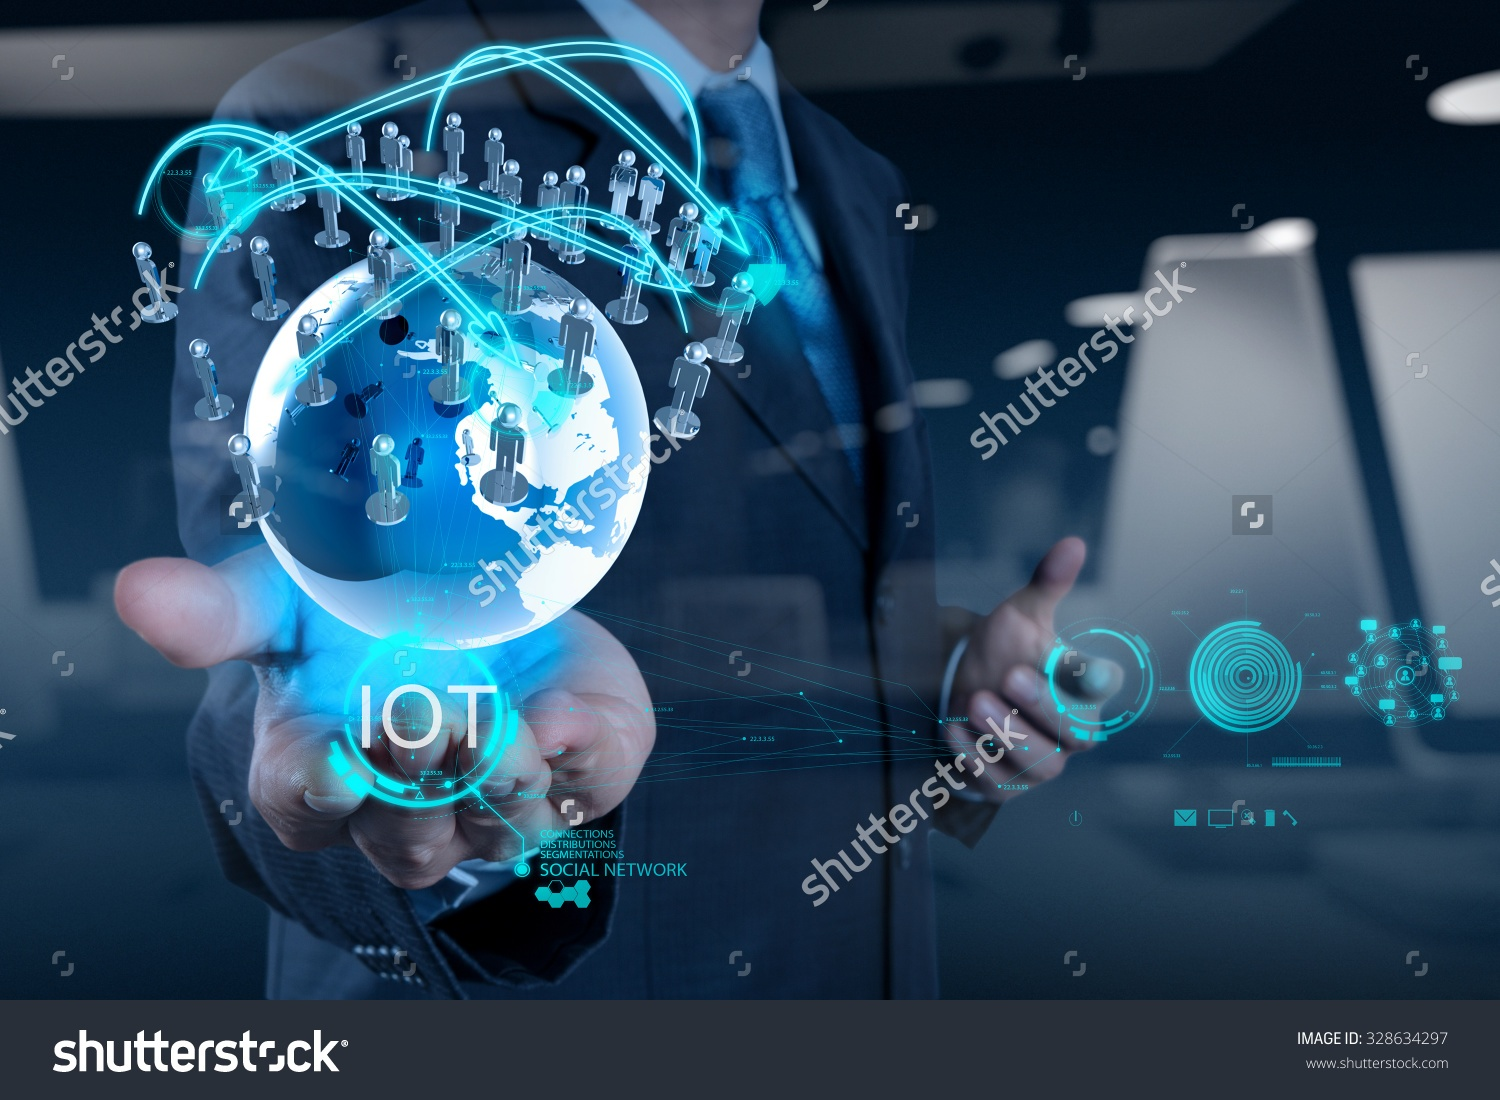 Business person holds Internet of Things